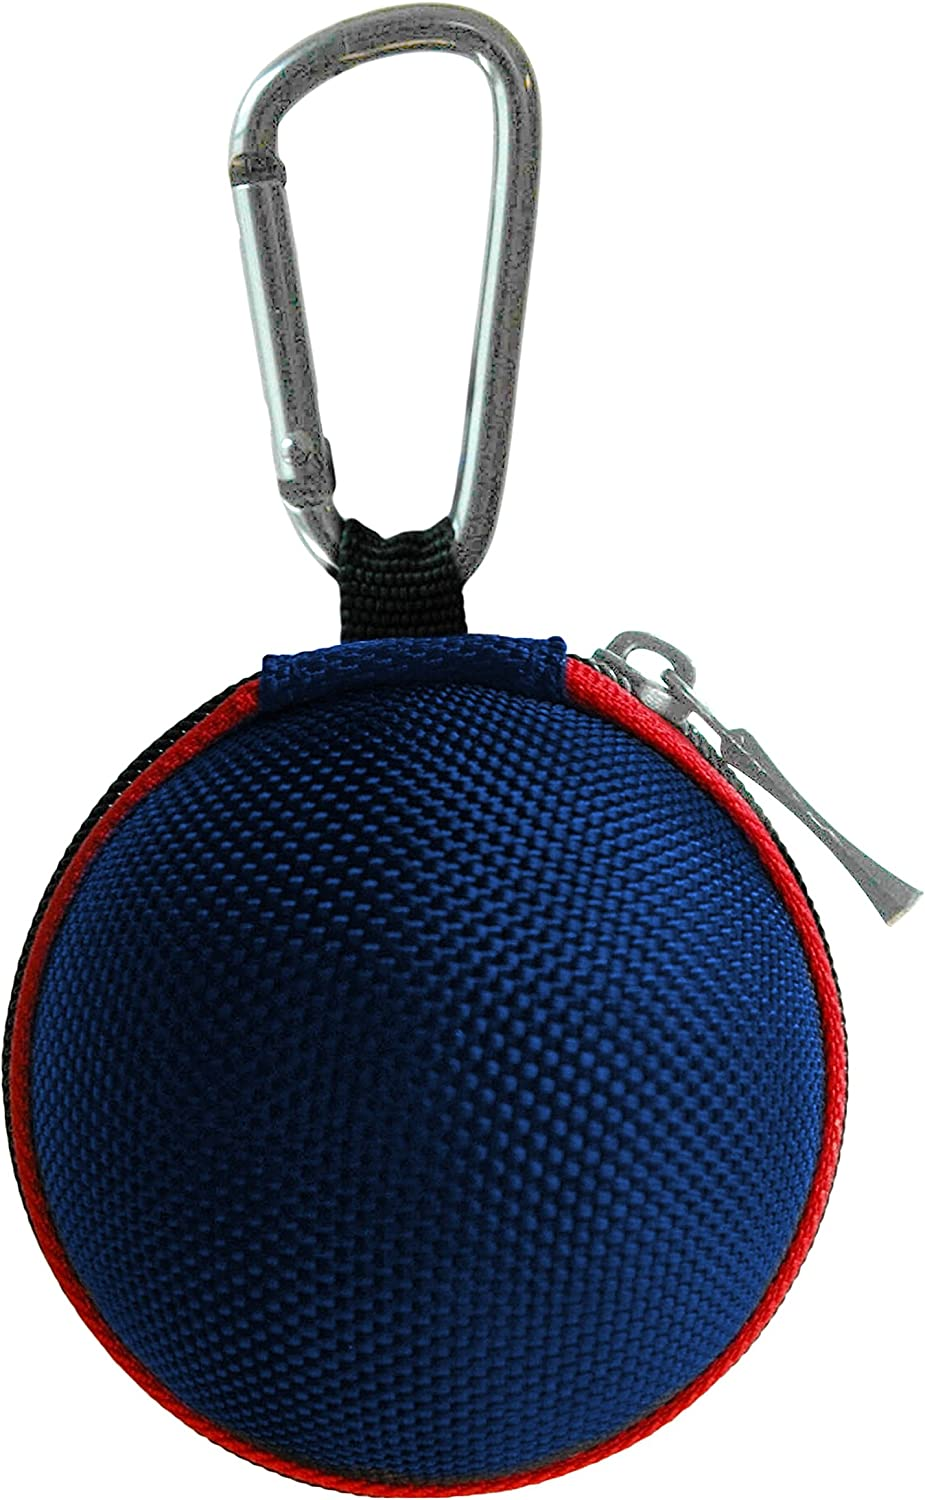 Clip-on Cue Ball Case Training Balls to Your Cue Stick Bag EXTRA STRONG STRAP DESIGN! Pool Balls Red//White//Blue Cue Ball Bag for Attaching Cue Balls Billiard Balls Ballsak Sport